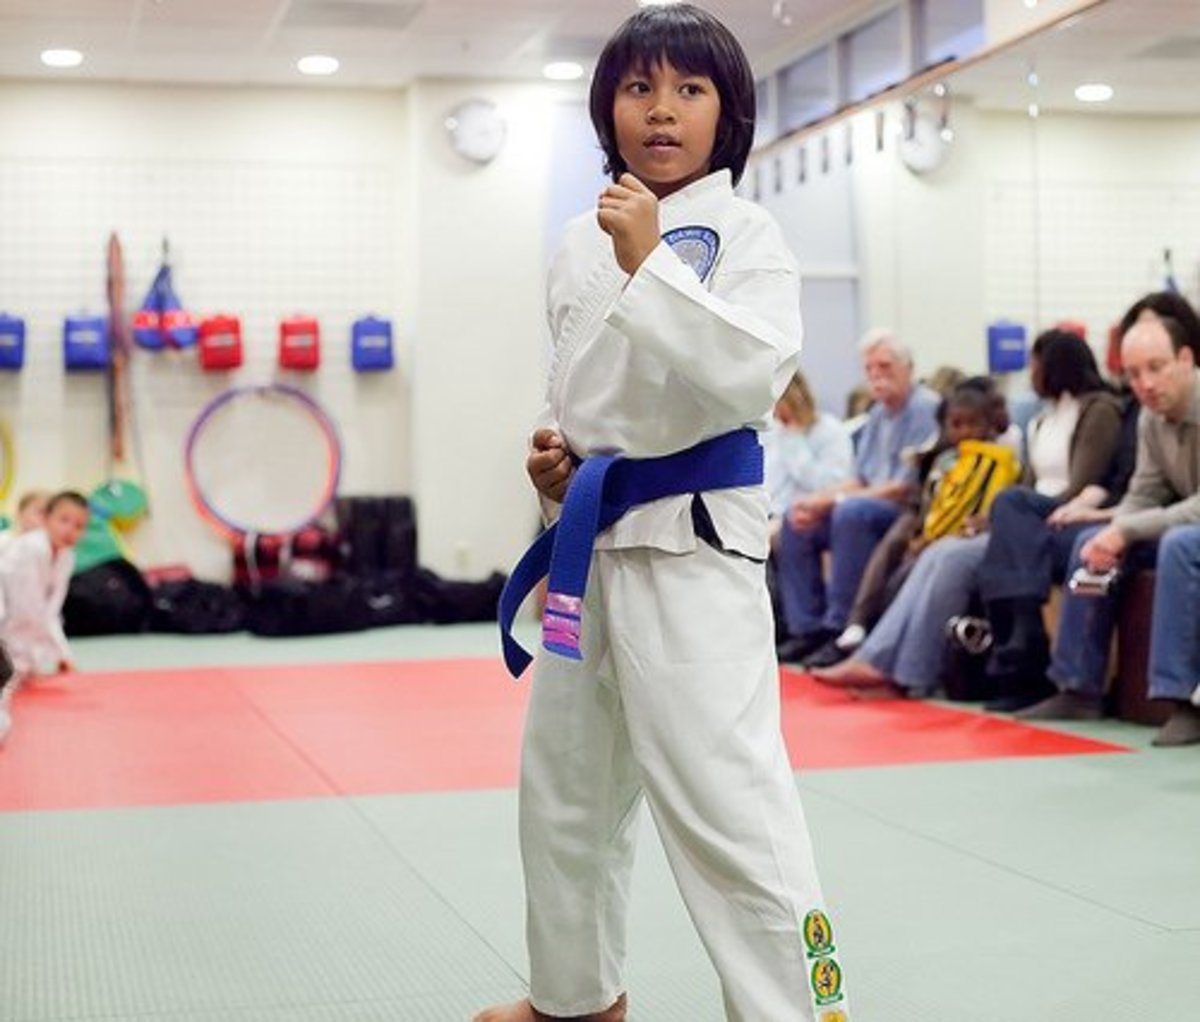 A young woman with a blue belt testing for purple.